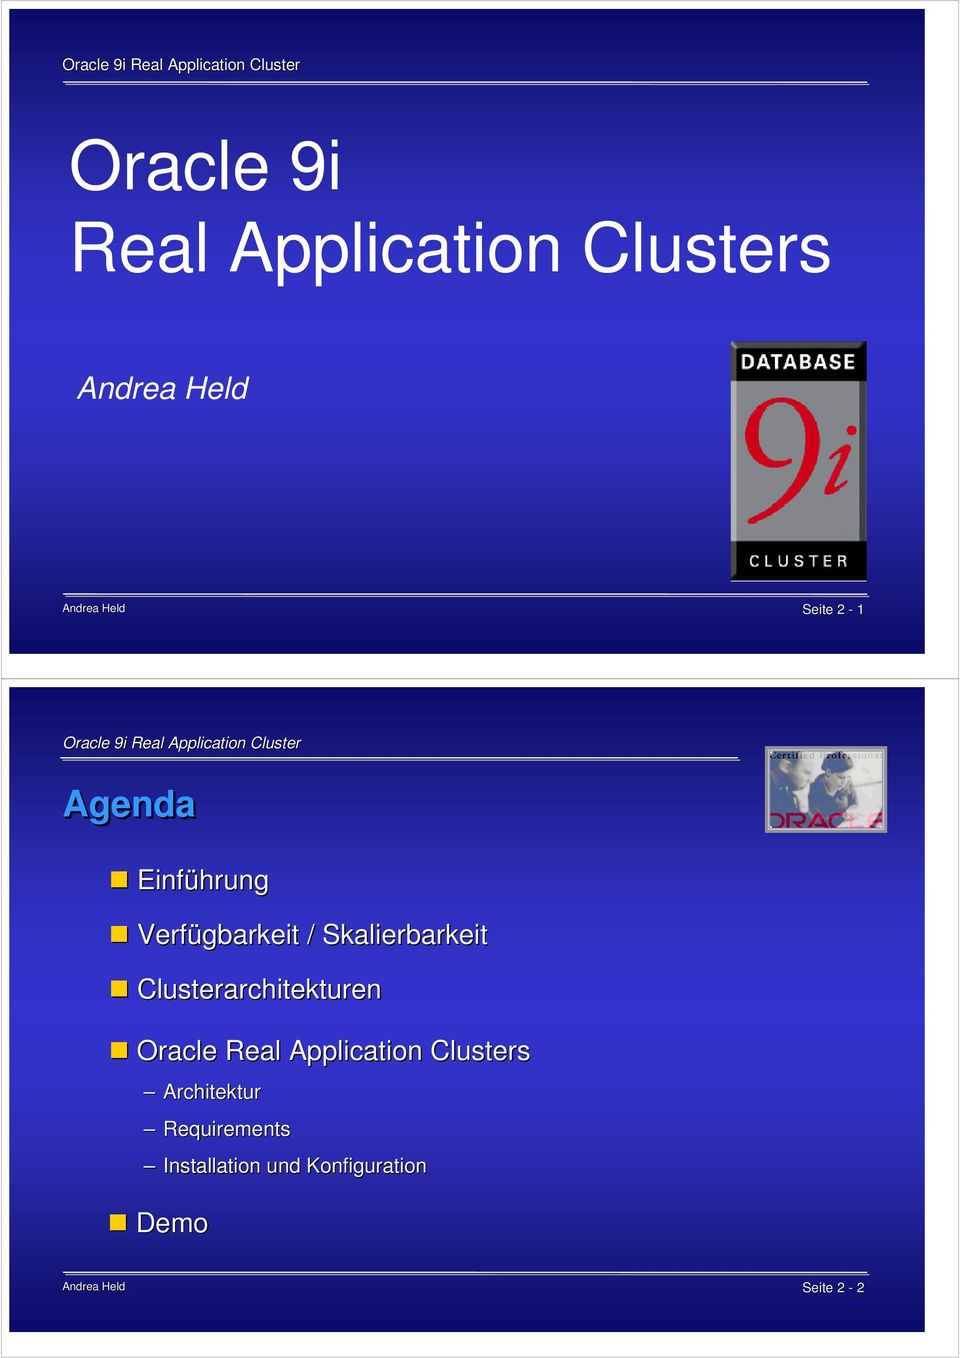 Clusterarchitekturen Oracle Real Application Clusters